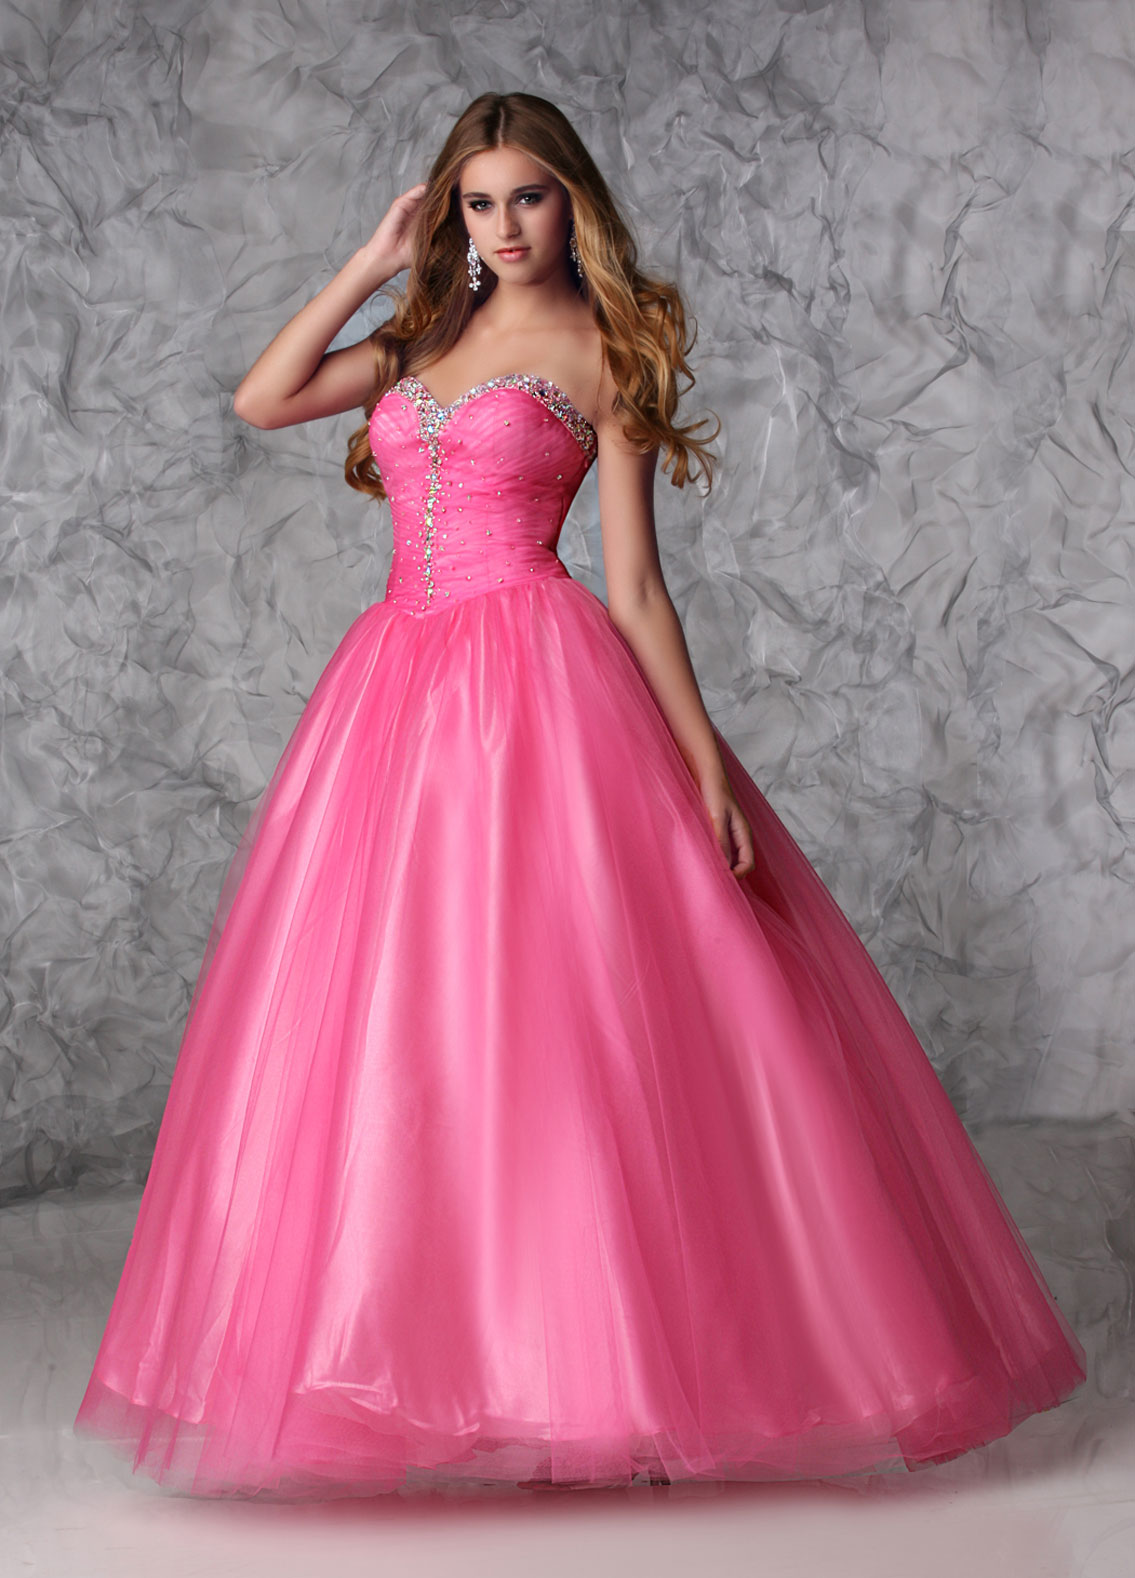 Hot Pink Prom Dresses with Diamonds